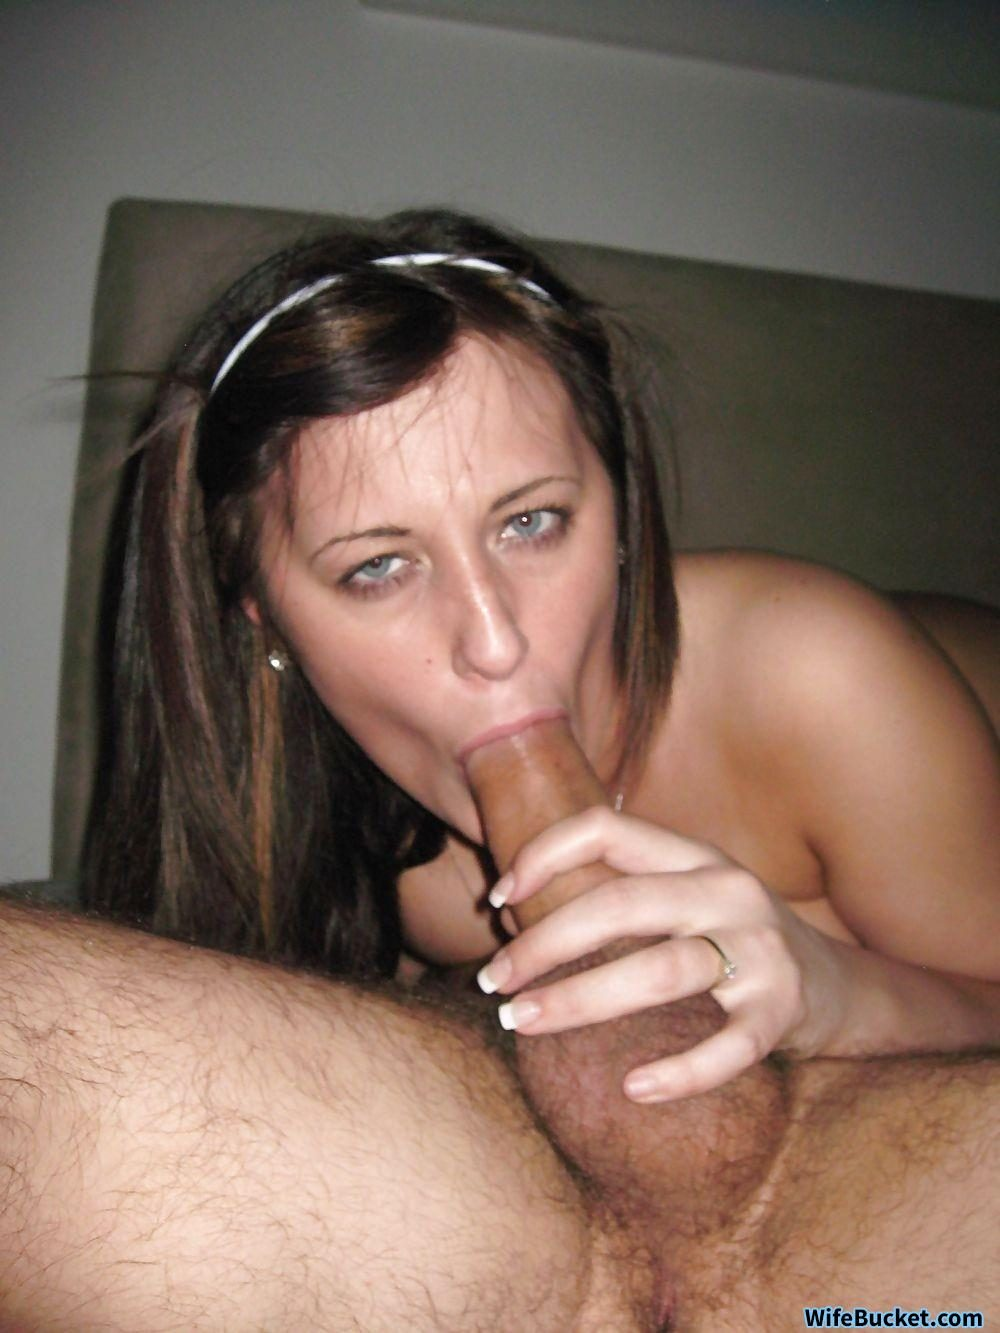 Real Swingers Archives  Wifebucket  Offical Milf Blog-4072